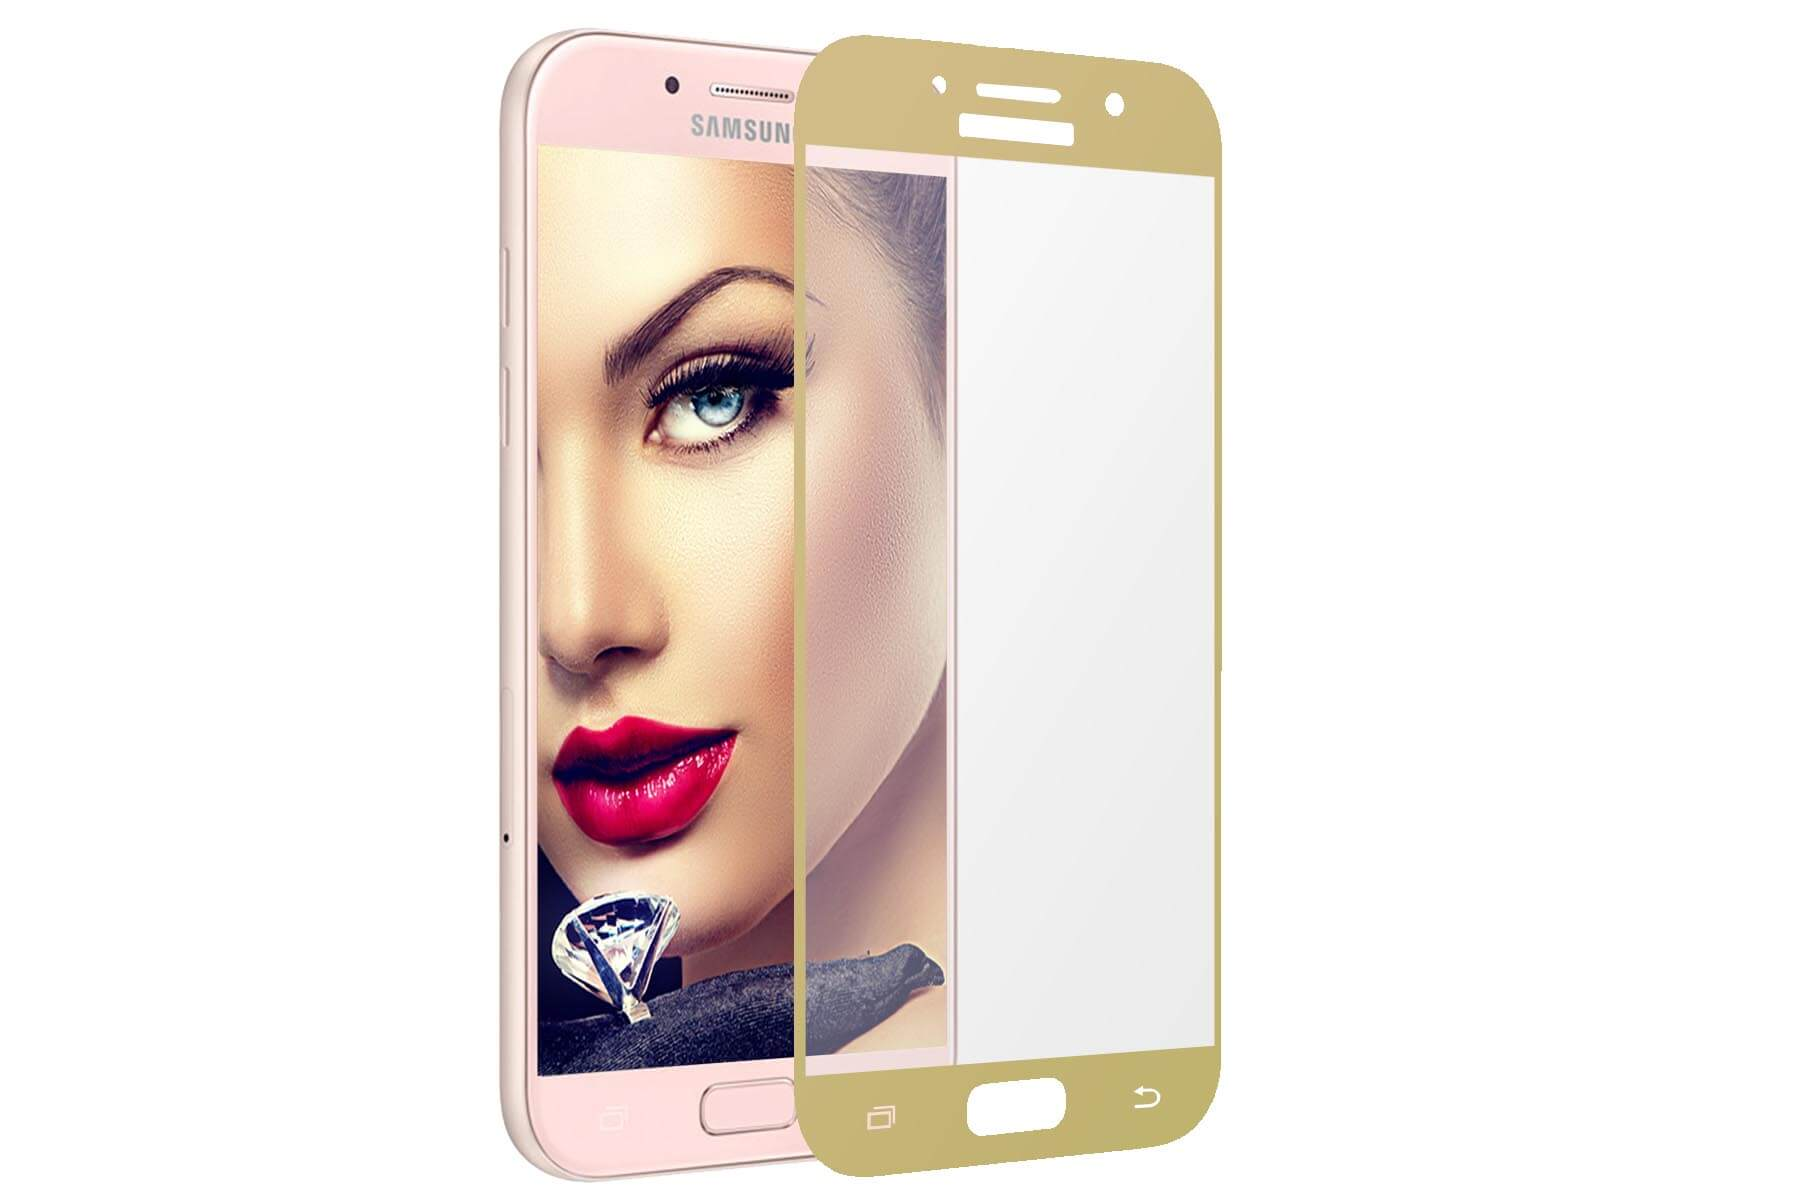 Details about Tempered Glass 9H Screen Protector for Samsung Galaxy A5 2017 (SM-A520F) - gold. See original listing